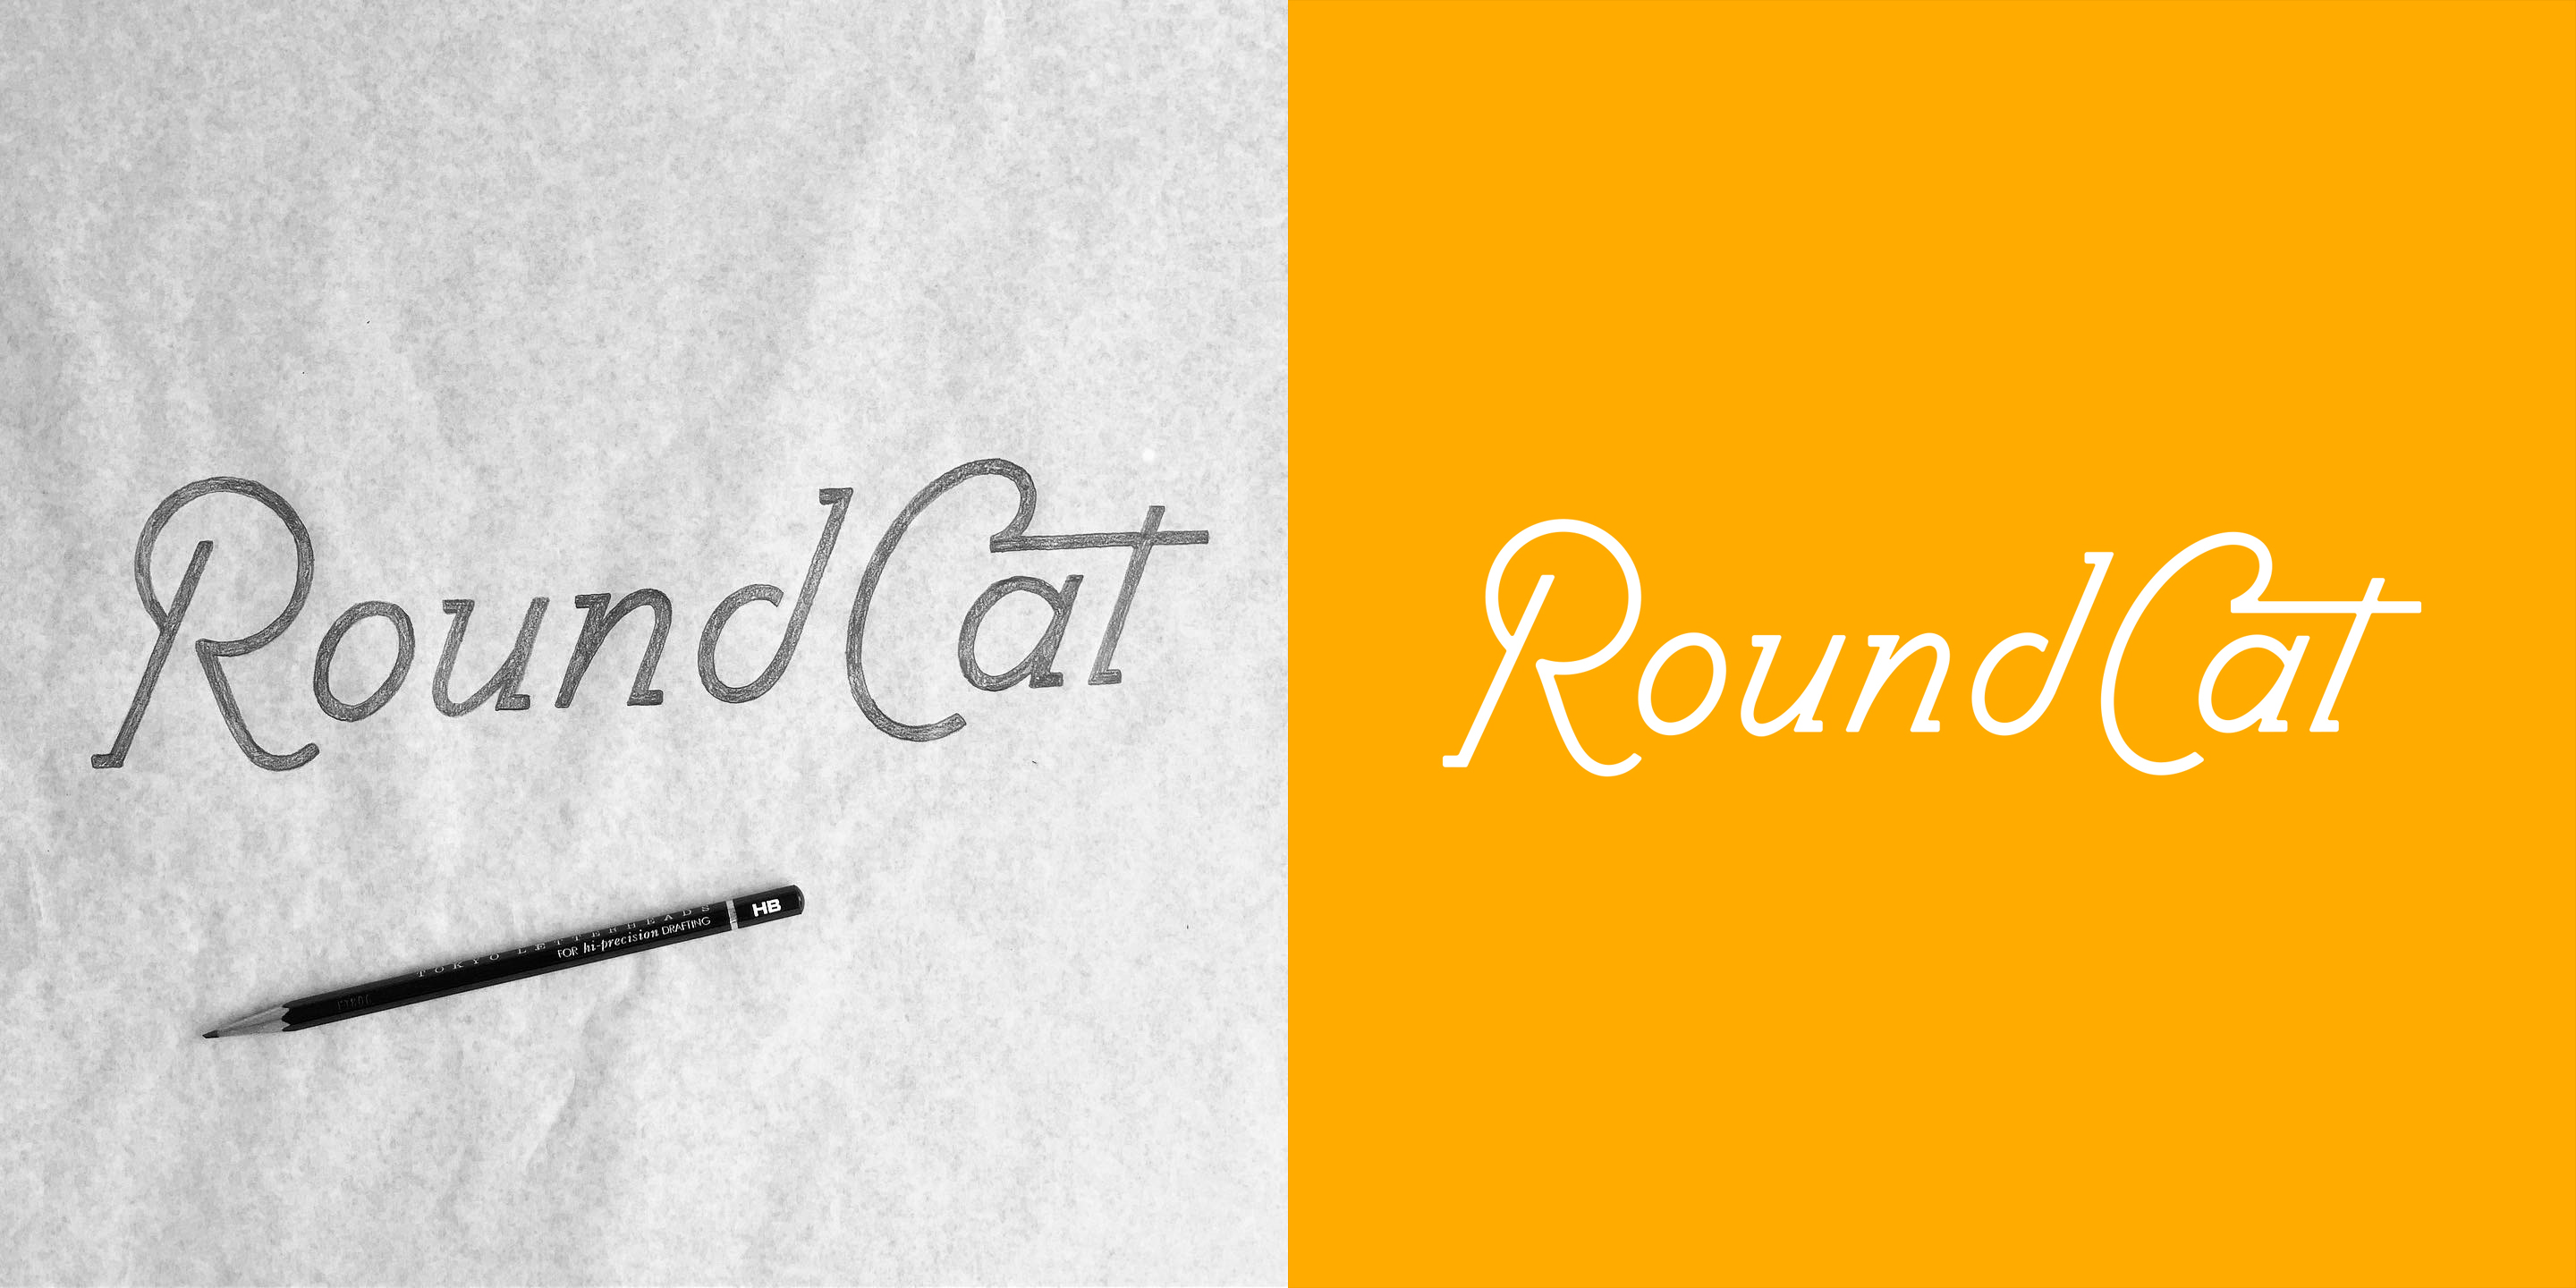 Round Cat word-mark